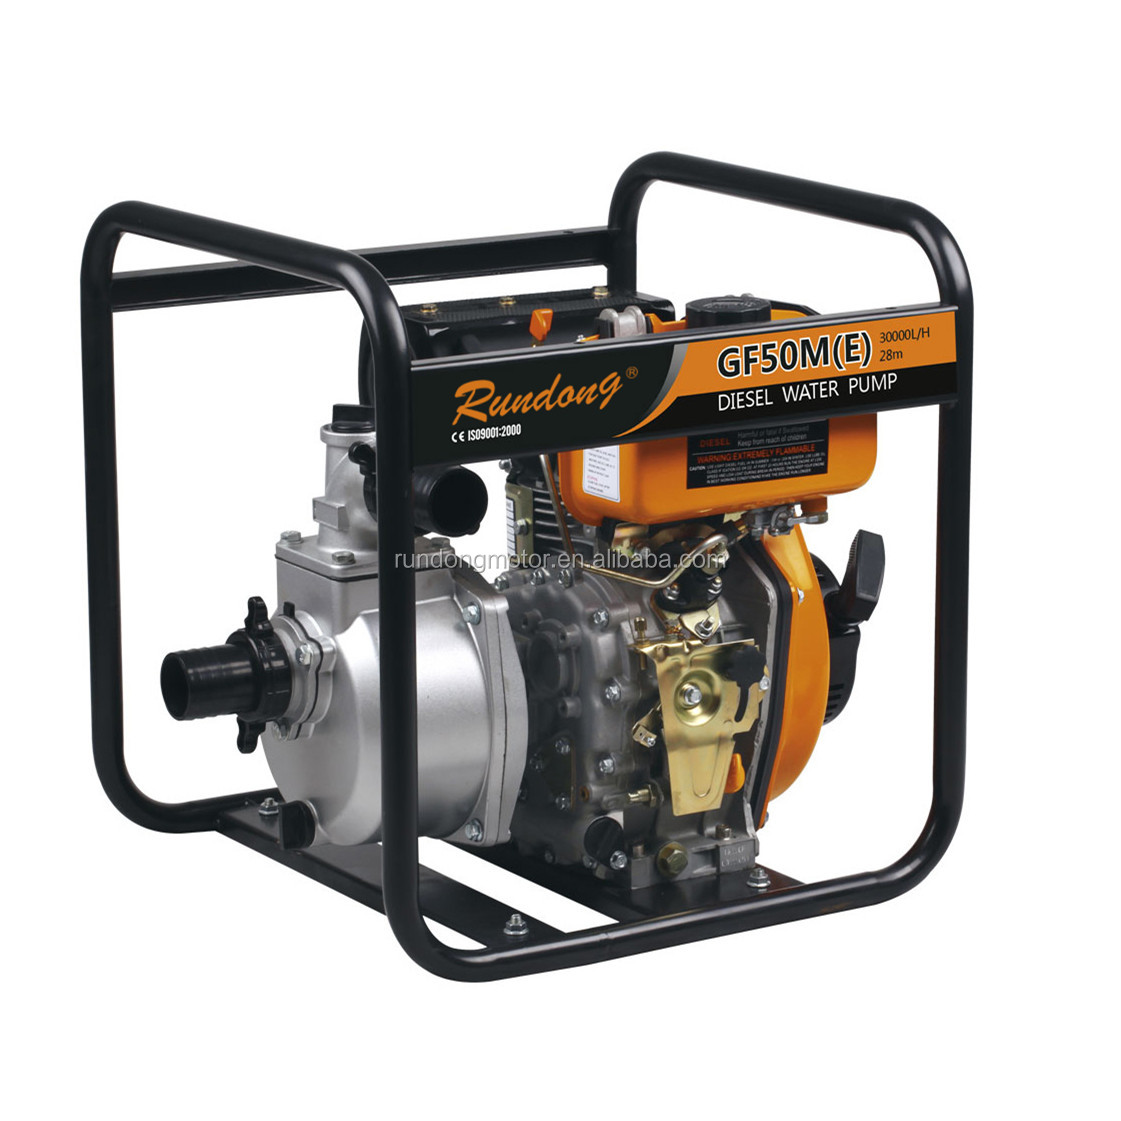 Diesel water pump,5HP water pump.recoil /electric start,suction 7m